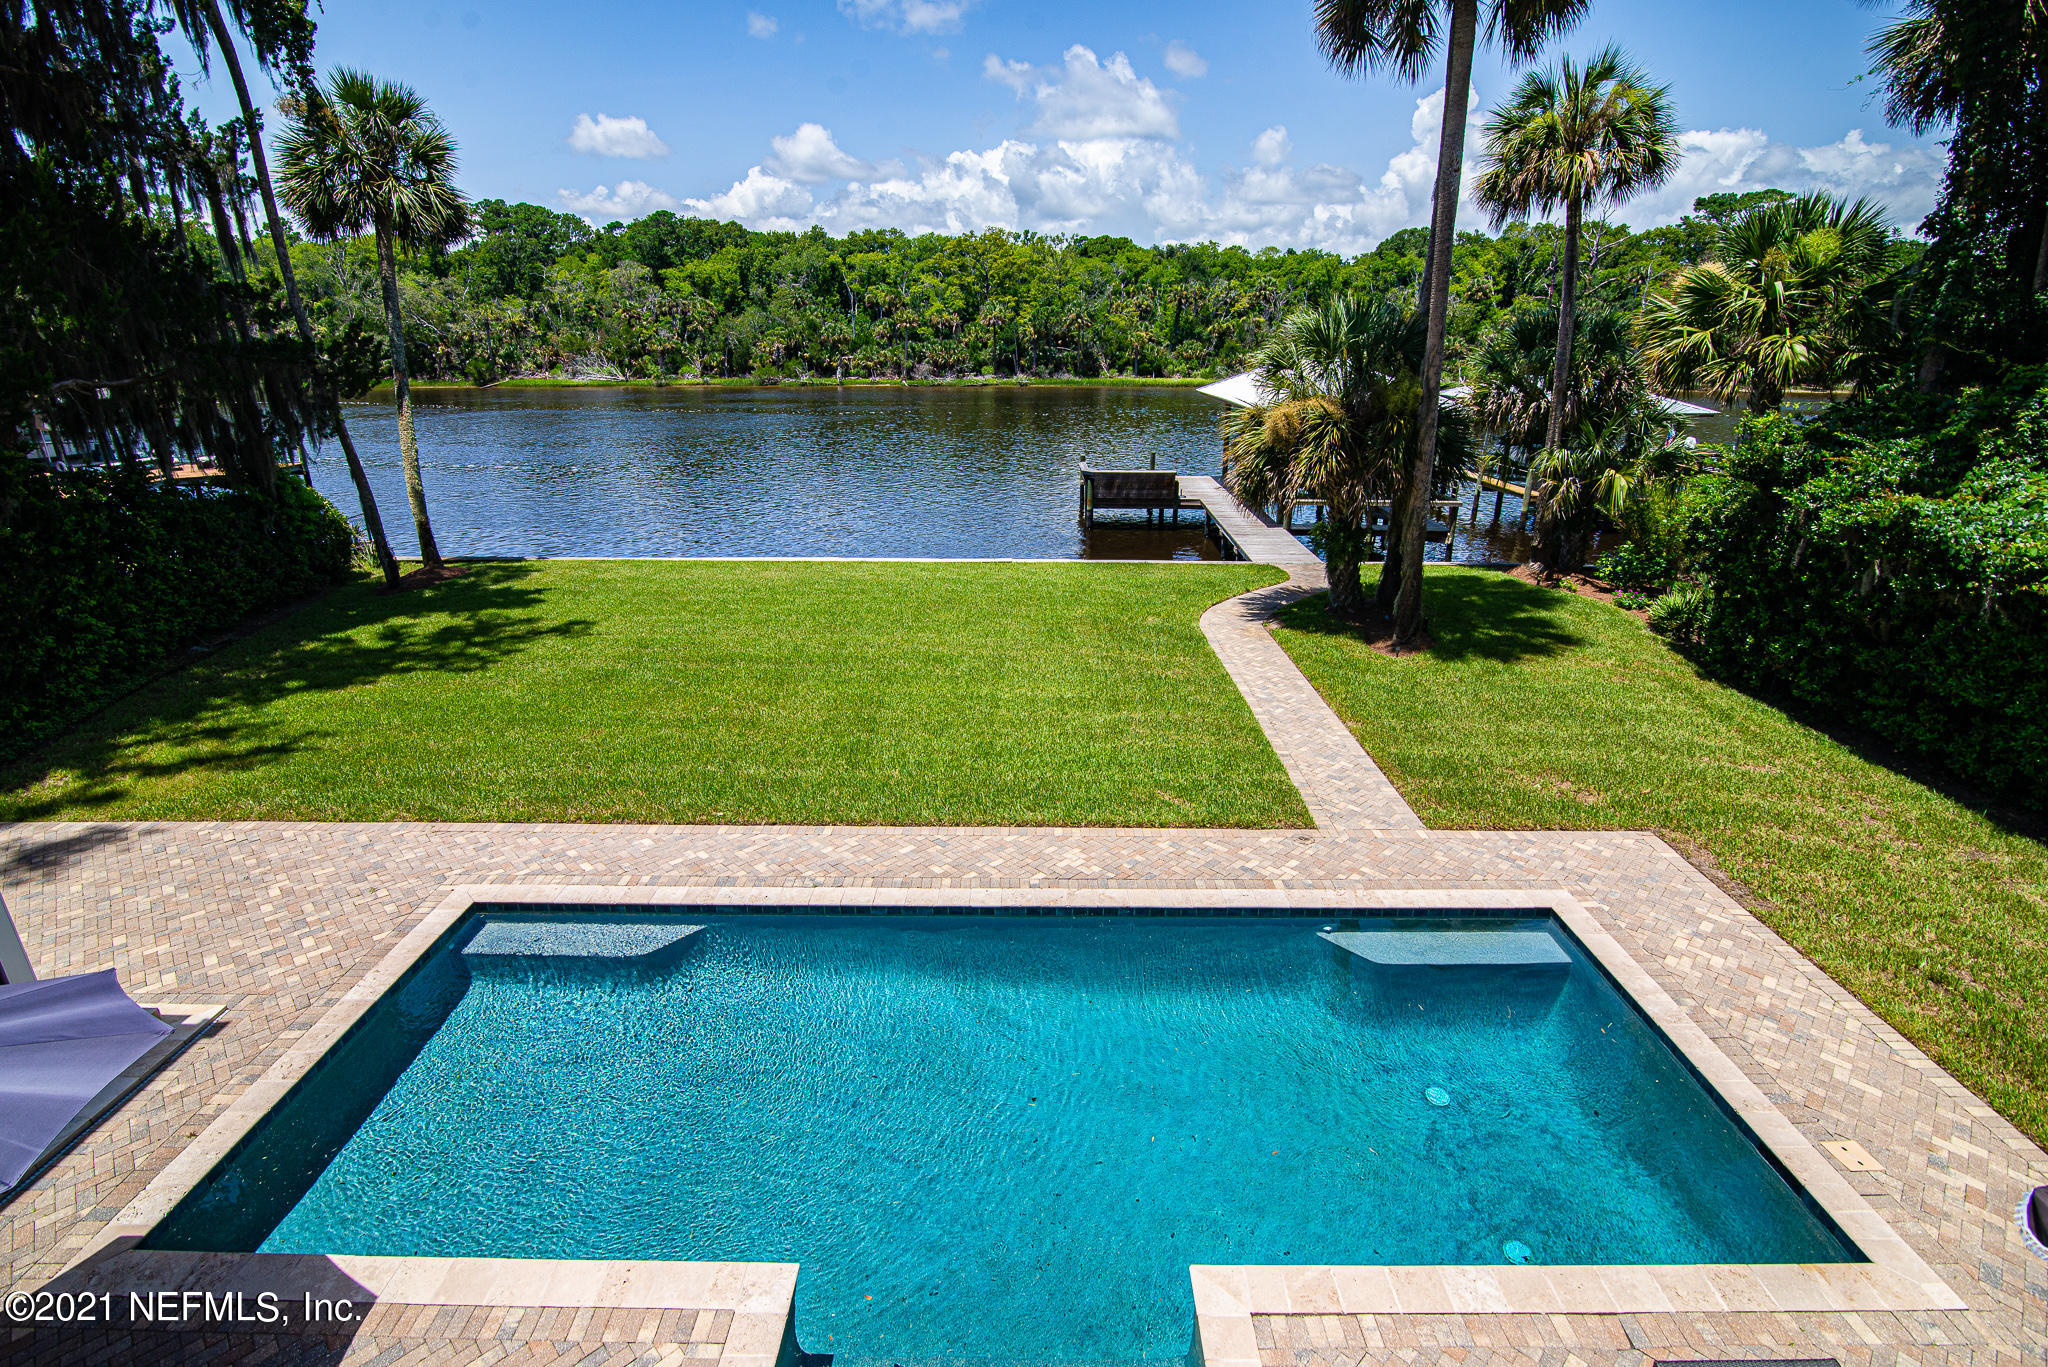 Direct ICW on 100 foot lot with dock, pool, summer kitchen...6 bedroom, 6.5 bath with 3 car garage with 1 bedroom apartment.  Major addition and remodel completed in 2014...marble countertops Thermador appliances including 6 burner stove, double oven, butlers pantry...wonderful views of the water from wall of windows across back of home both upstairs and downstairs includes full house balcony and sundeck area overlooking pool and large private backyard. Large bedrooms with walk in closets and 3rd flr bedroom / playroom w/full bath and closets. Owner suite has 2 walk in custom closets and gas fireplace with double French doors to balcony. Other features: dock with 8000lb covered boat lift, 3 fireplaces, 2 staircases, formal living and dining room. Perfect waterfront home Florida living!